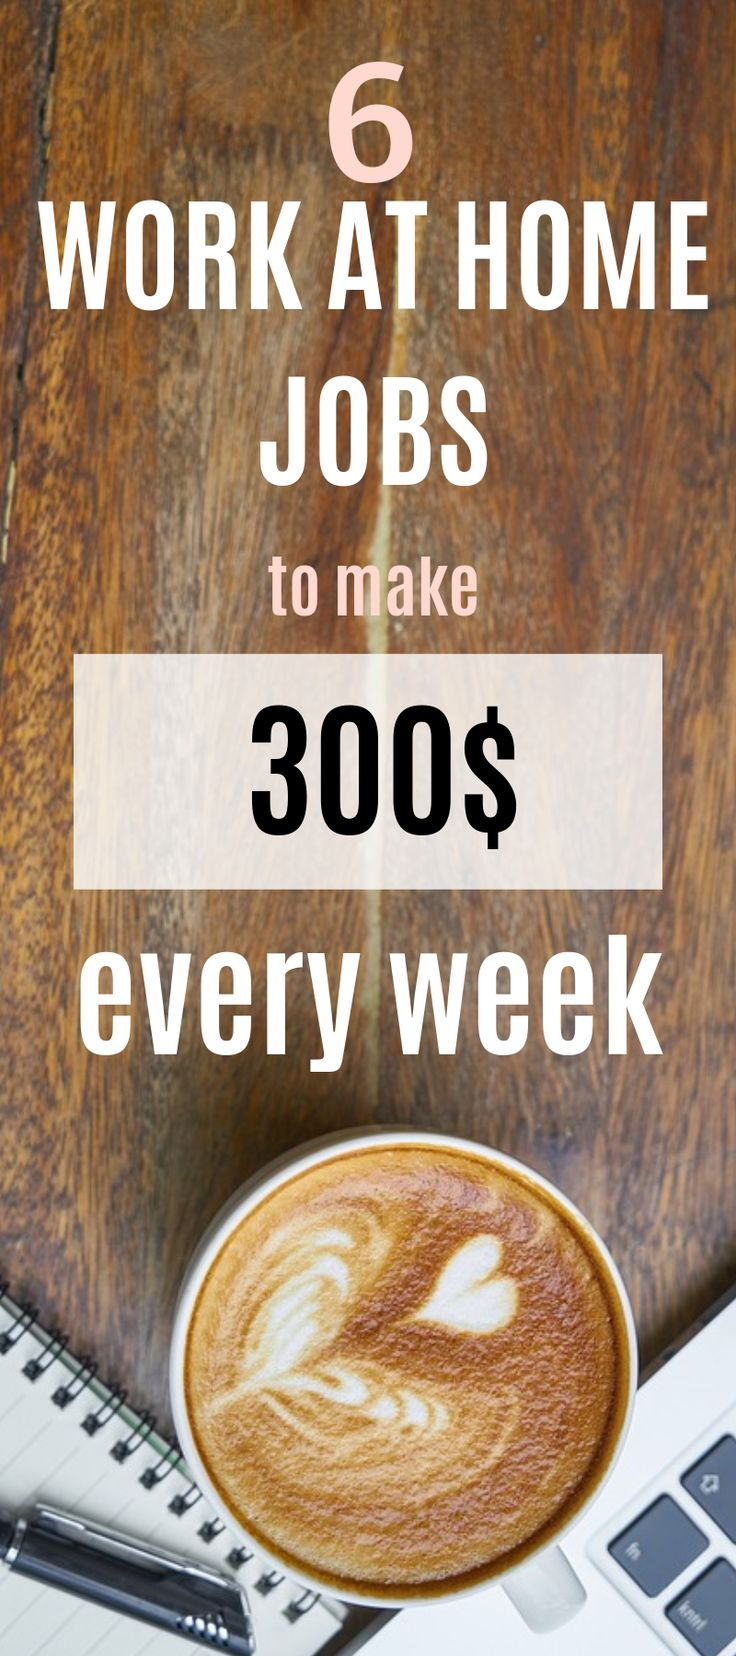 6 Work at Home Jobs to make 300$ every week – Inspire Blog